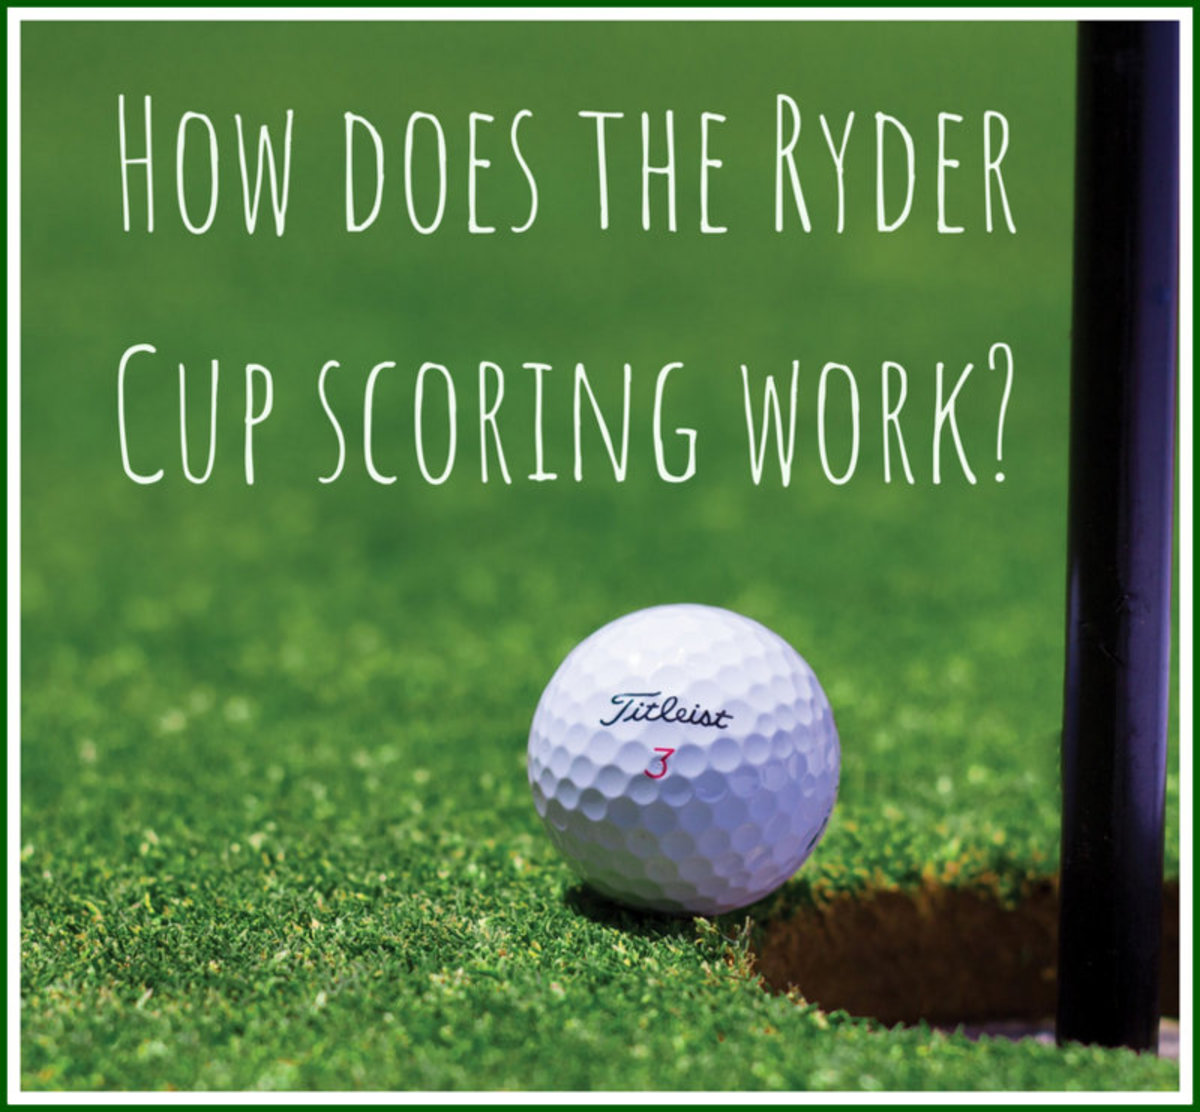 How Does the Ryder Cup Scoring Work?